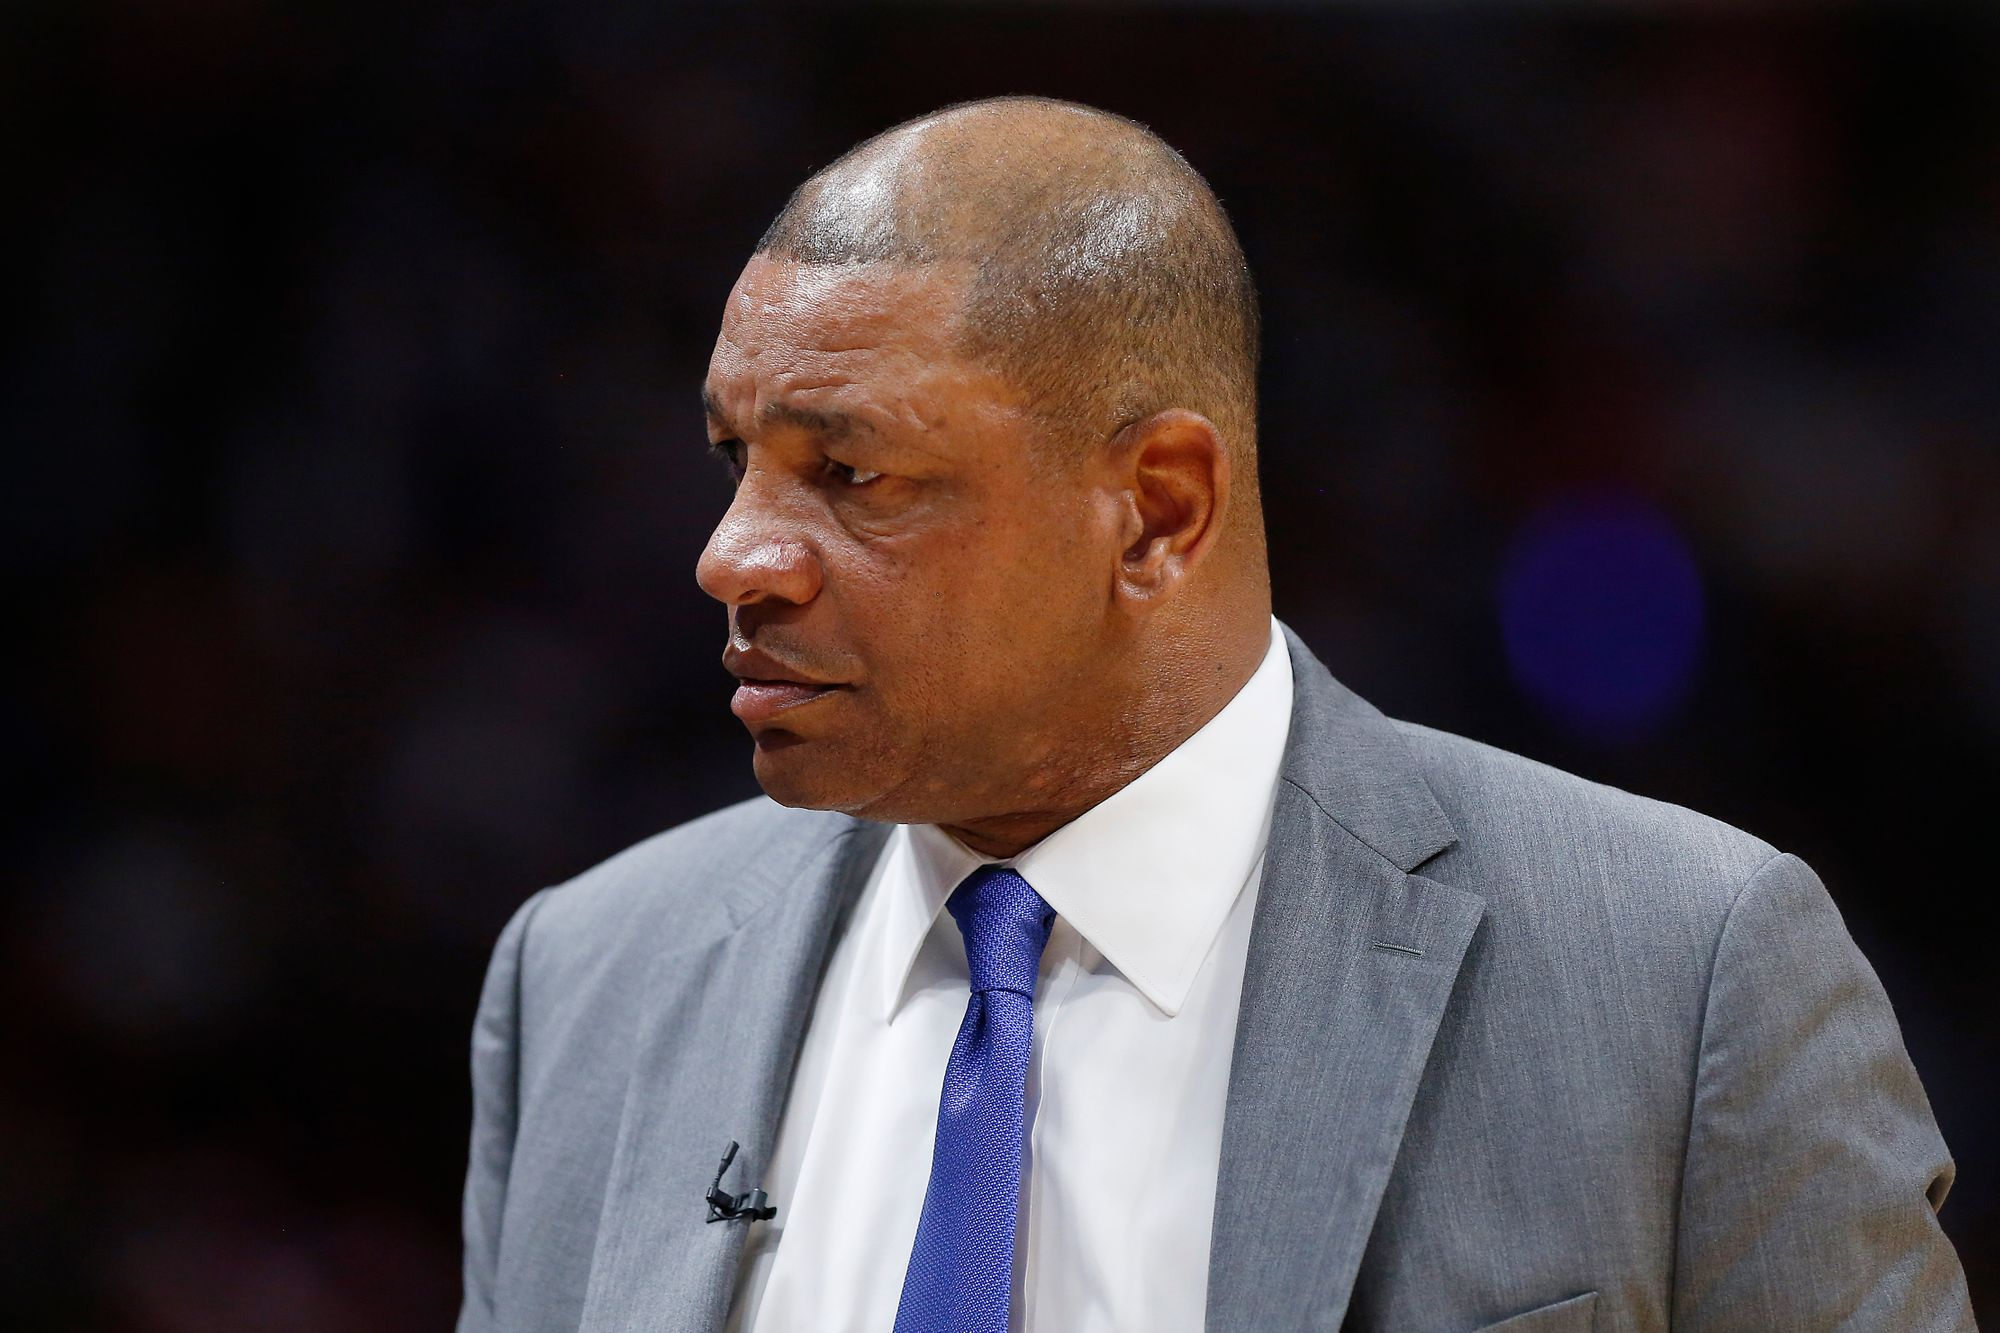 NBA Coaching Report: Doc Rivers Finds Another Job Days After LA Clippers Ouster